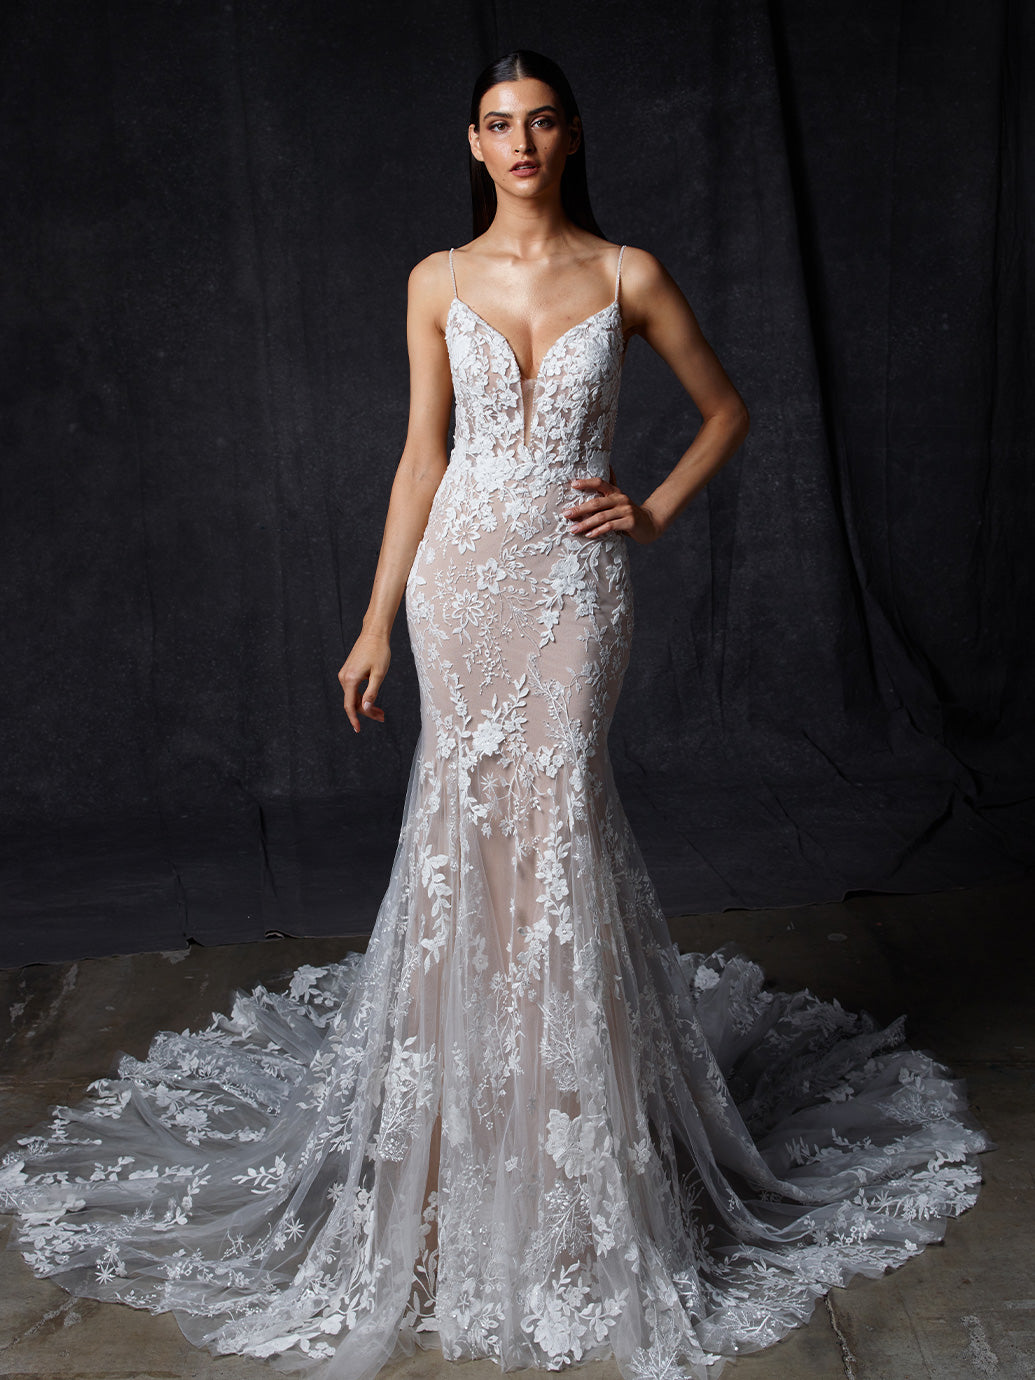 Ora - New, Gown, Enzoani - Eternal Bridal